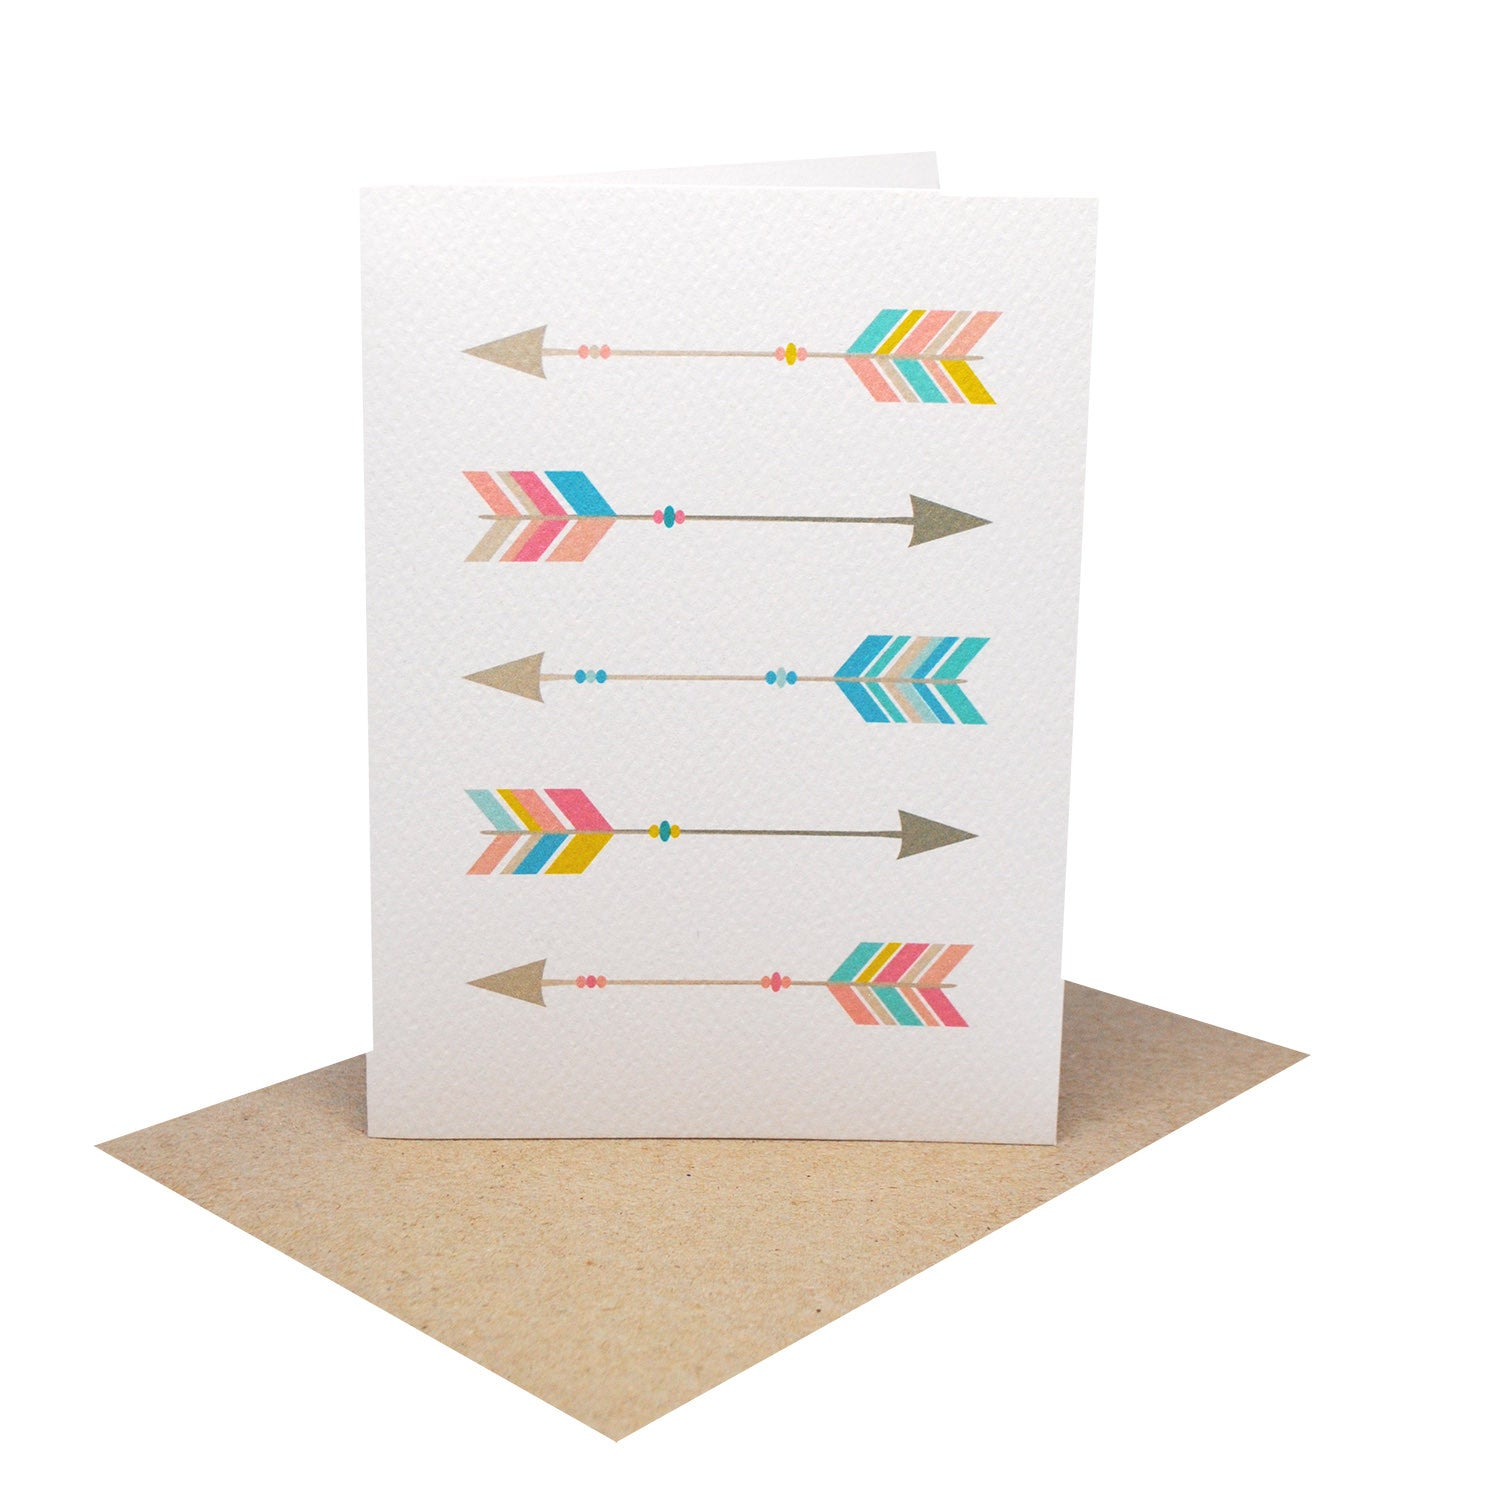 Geometric Arrows Greeting Card by mumandmehandmadedesigns- An Australian Online Stationery and Card Shop